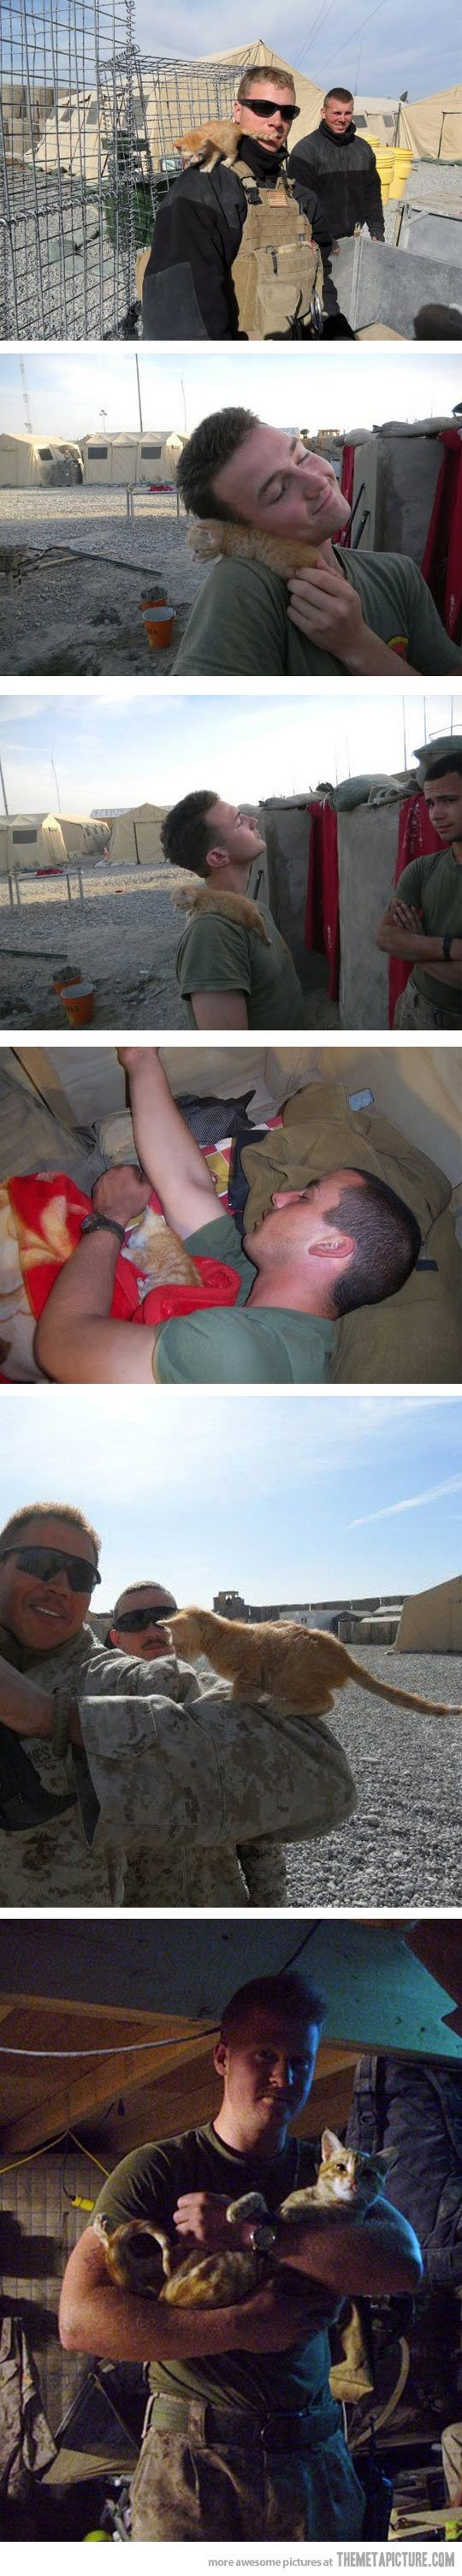 Kitty rescued by US Marine in Afghanistan. This is the sweetest thing I have ever seen